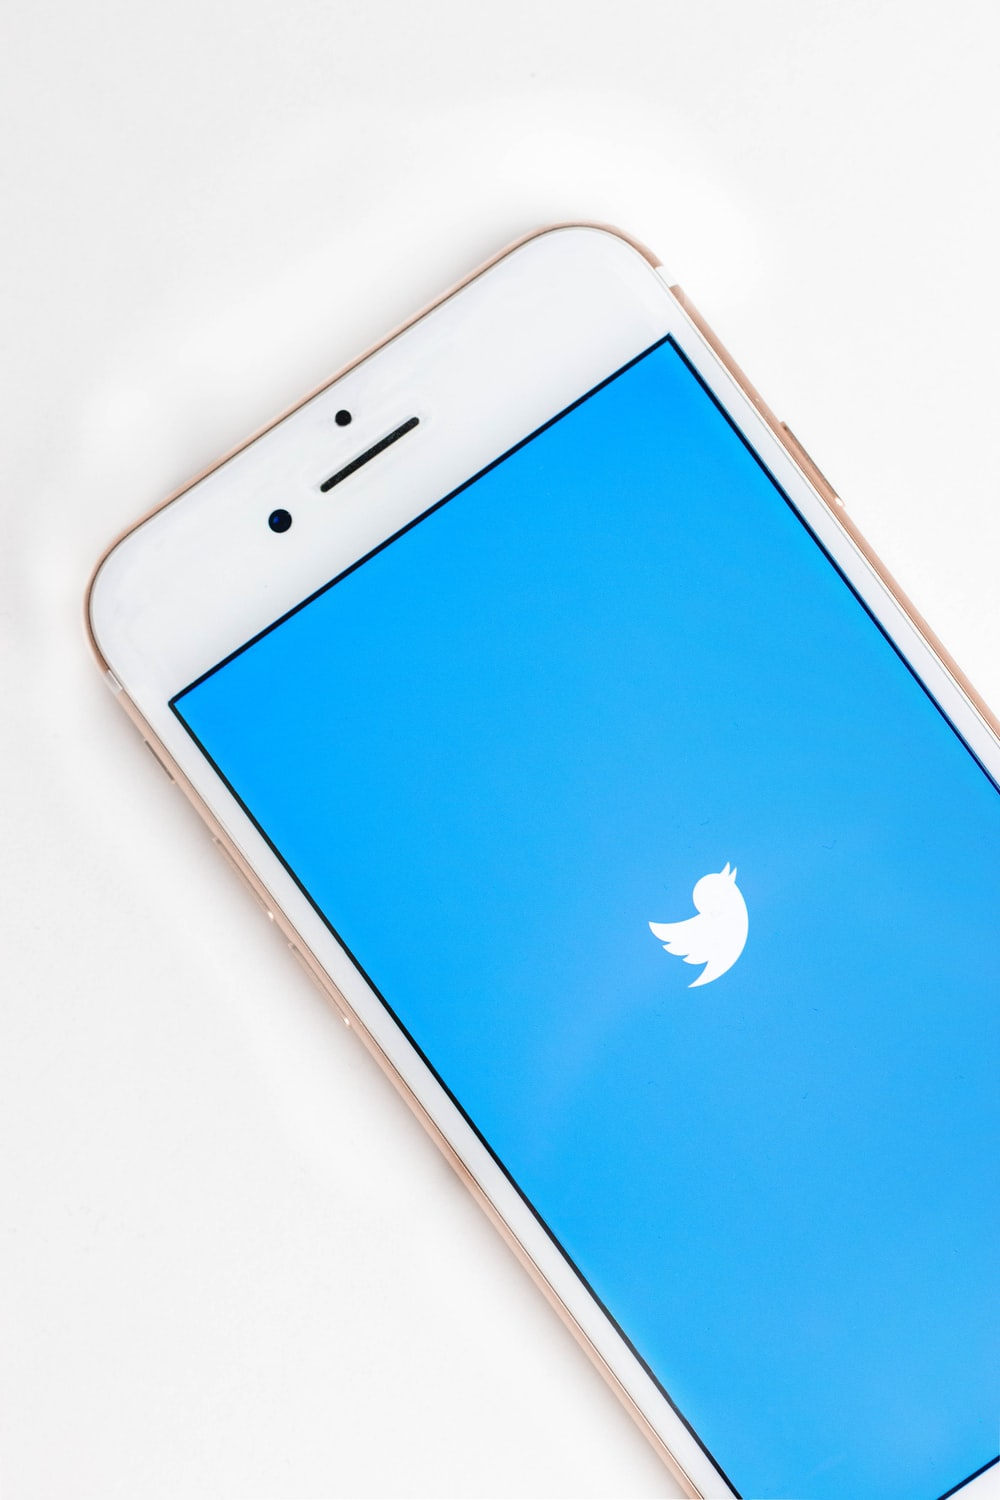 gold Apple iPhone 6s displaying Twitter logo